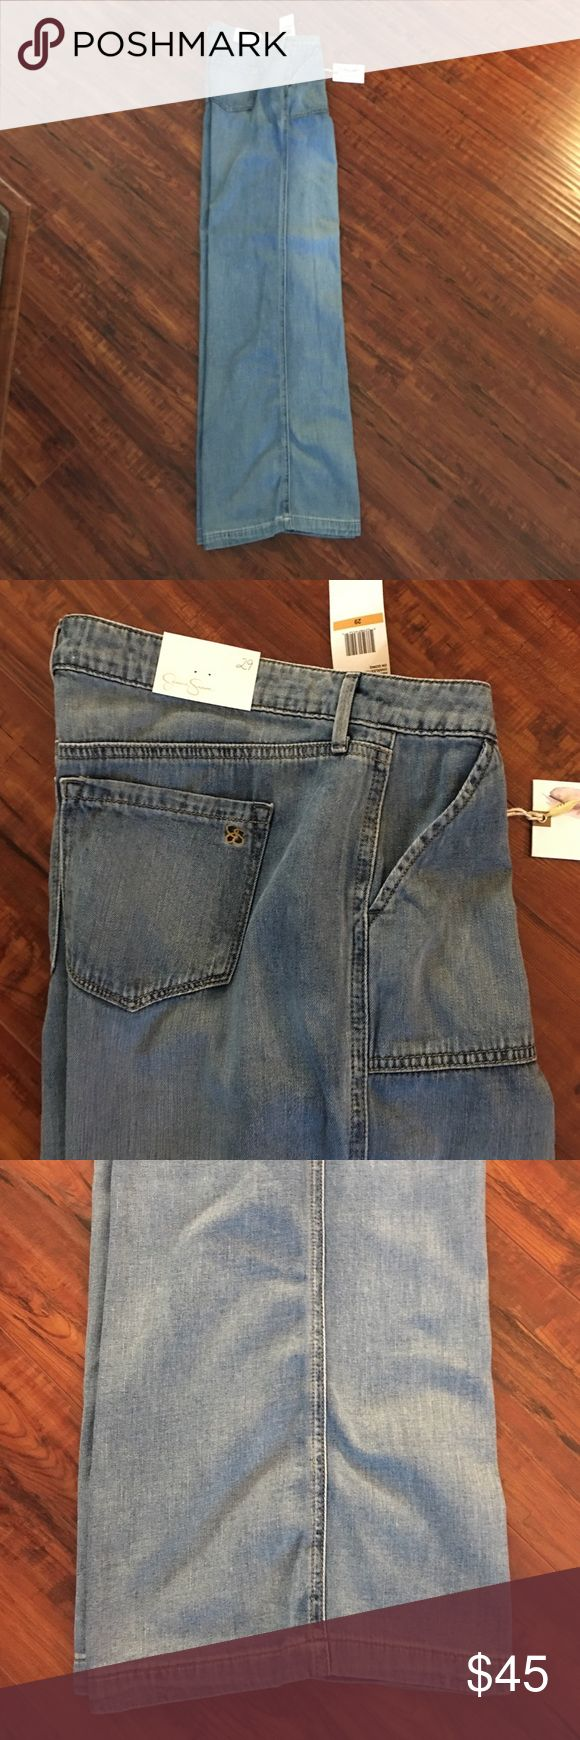 🎀🆕Jessica Simpson Faded Flared Leg Jeans🎀 So comfortable and sexy on, these brand new Jessica Simpson flared, faded jeans would look great with a fitted top to show off your waist! Jessica Simpson Jeans Flare & Wide Leg